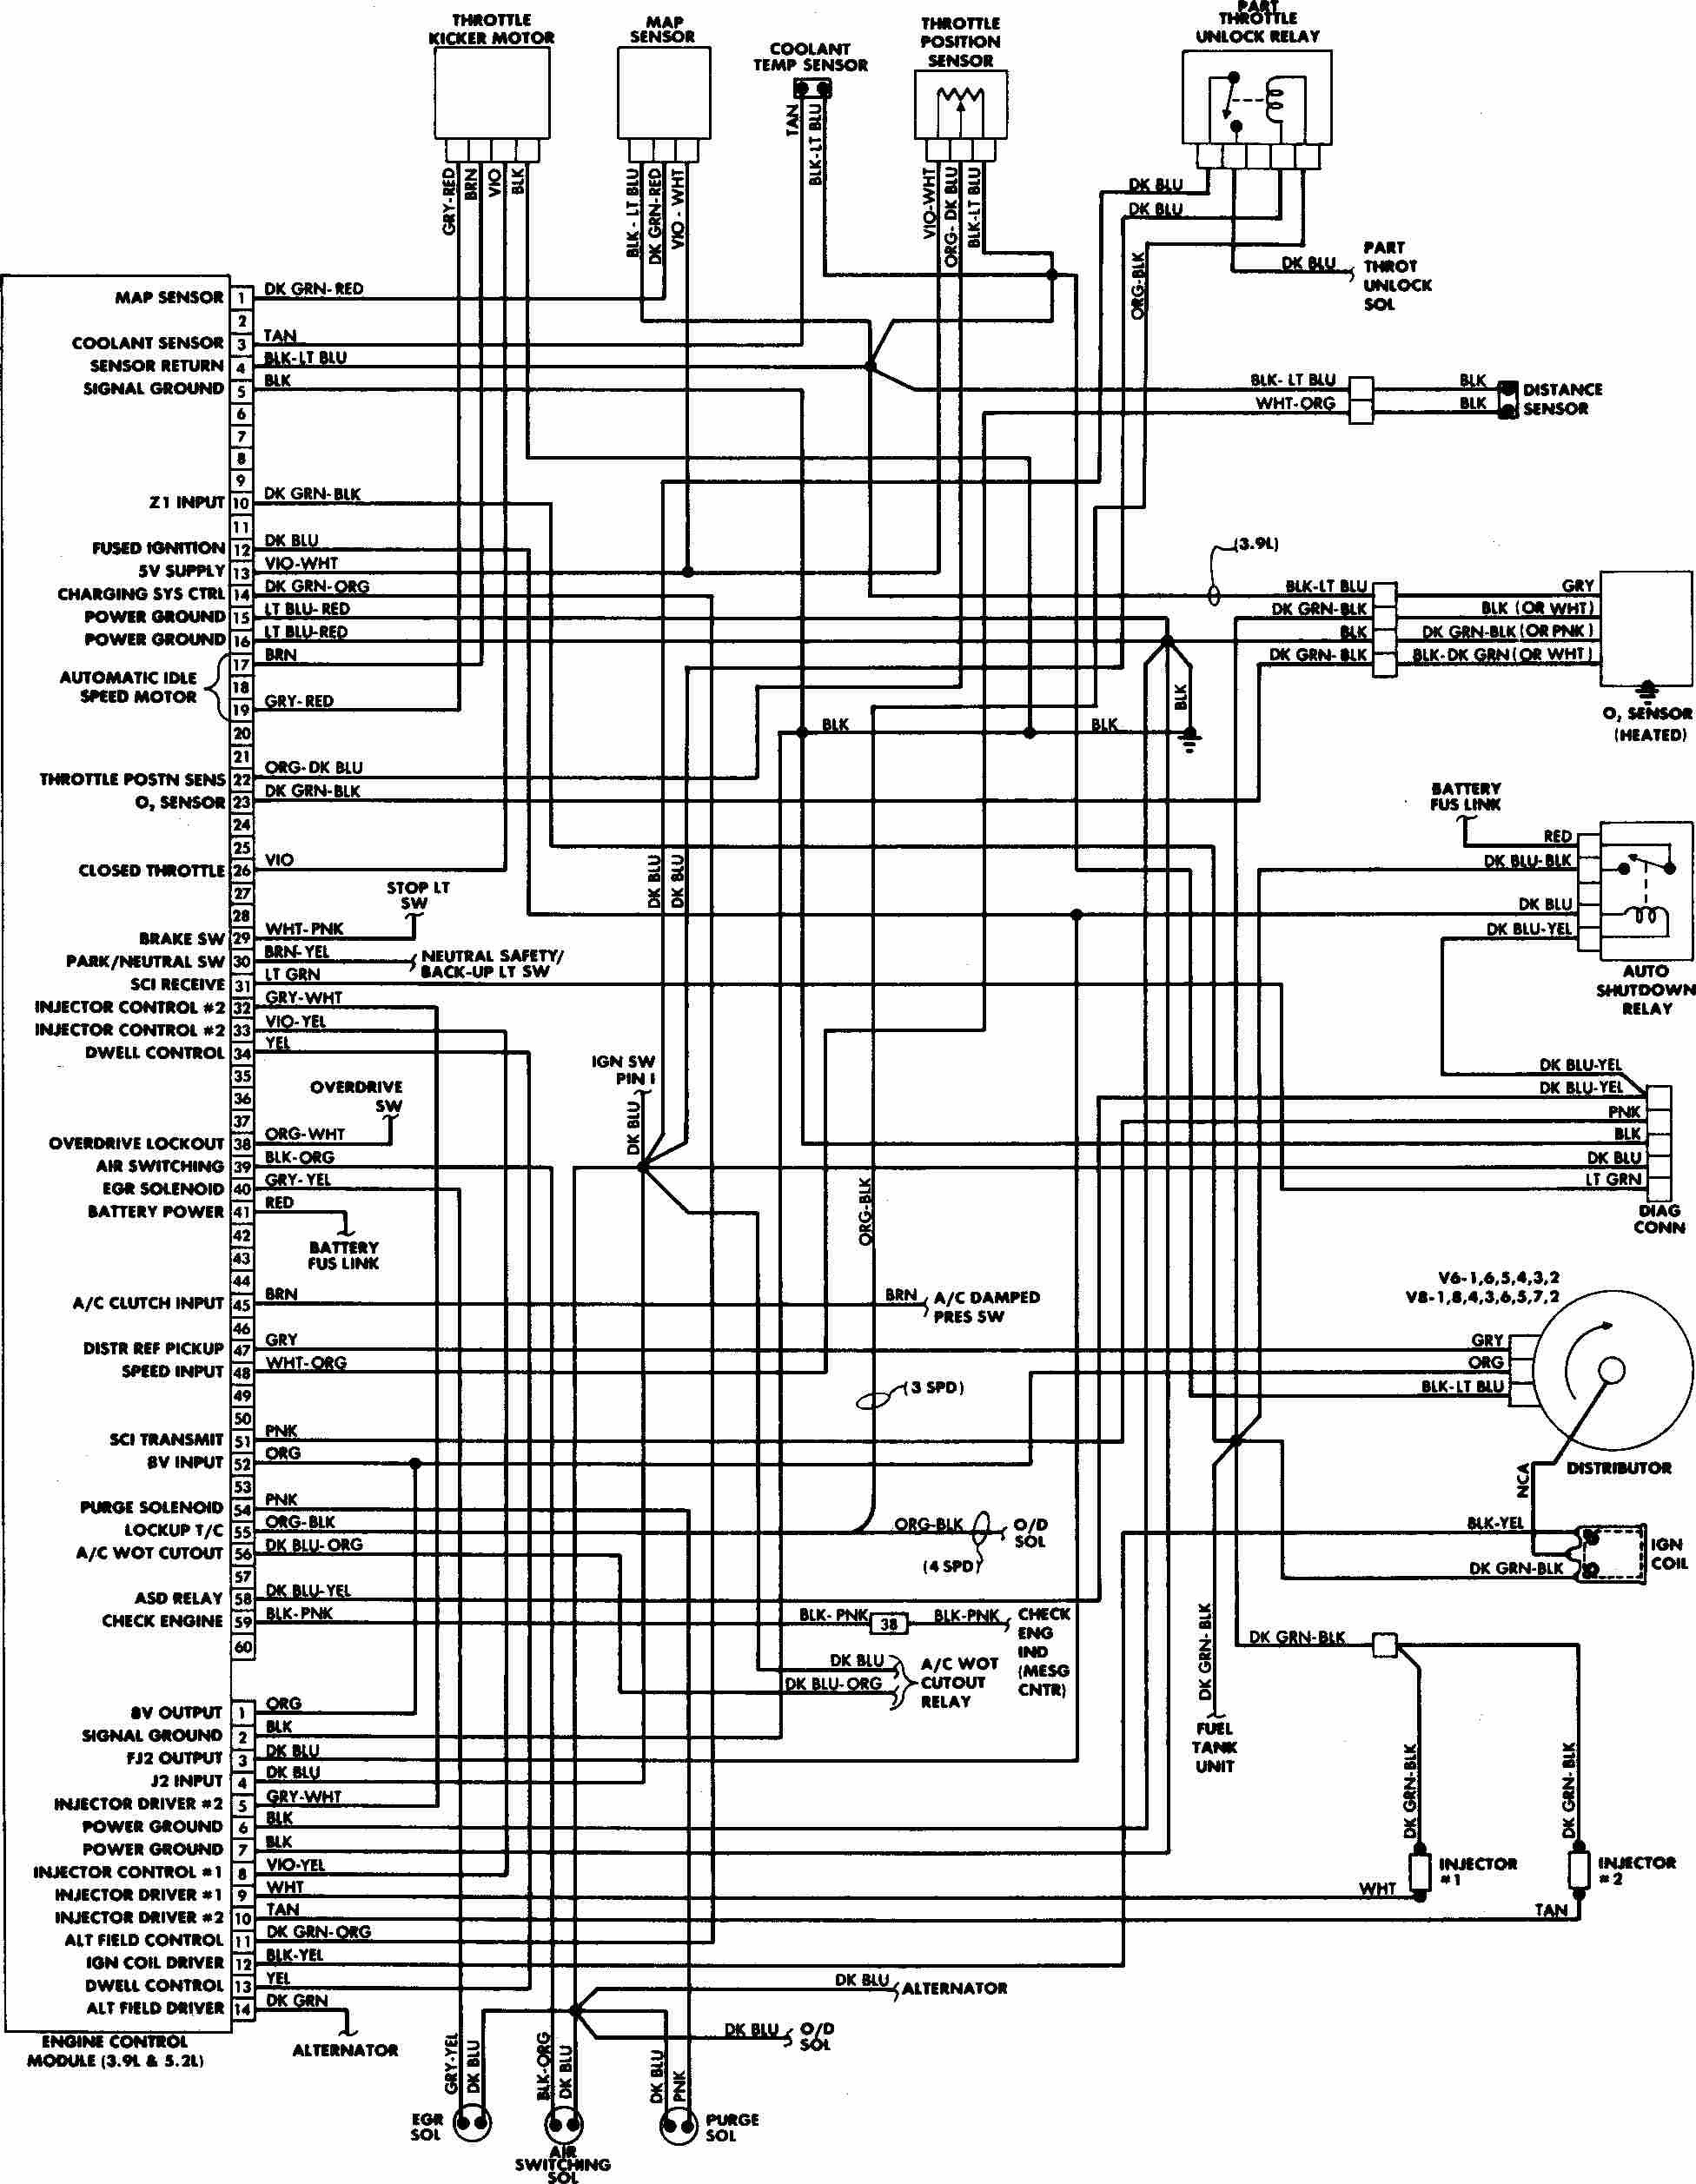 2014 dodge ram wiring diagram - 1995 dodge ram 1500 transmission wiring  diagram fresh 2003 dodge